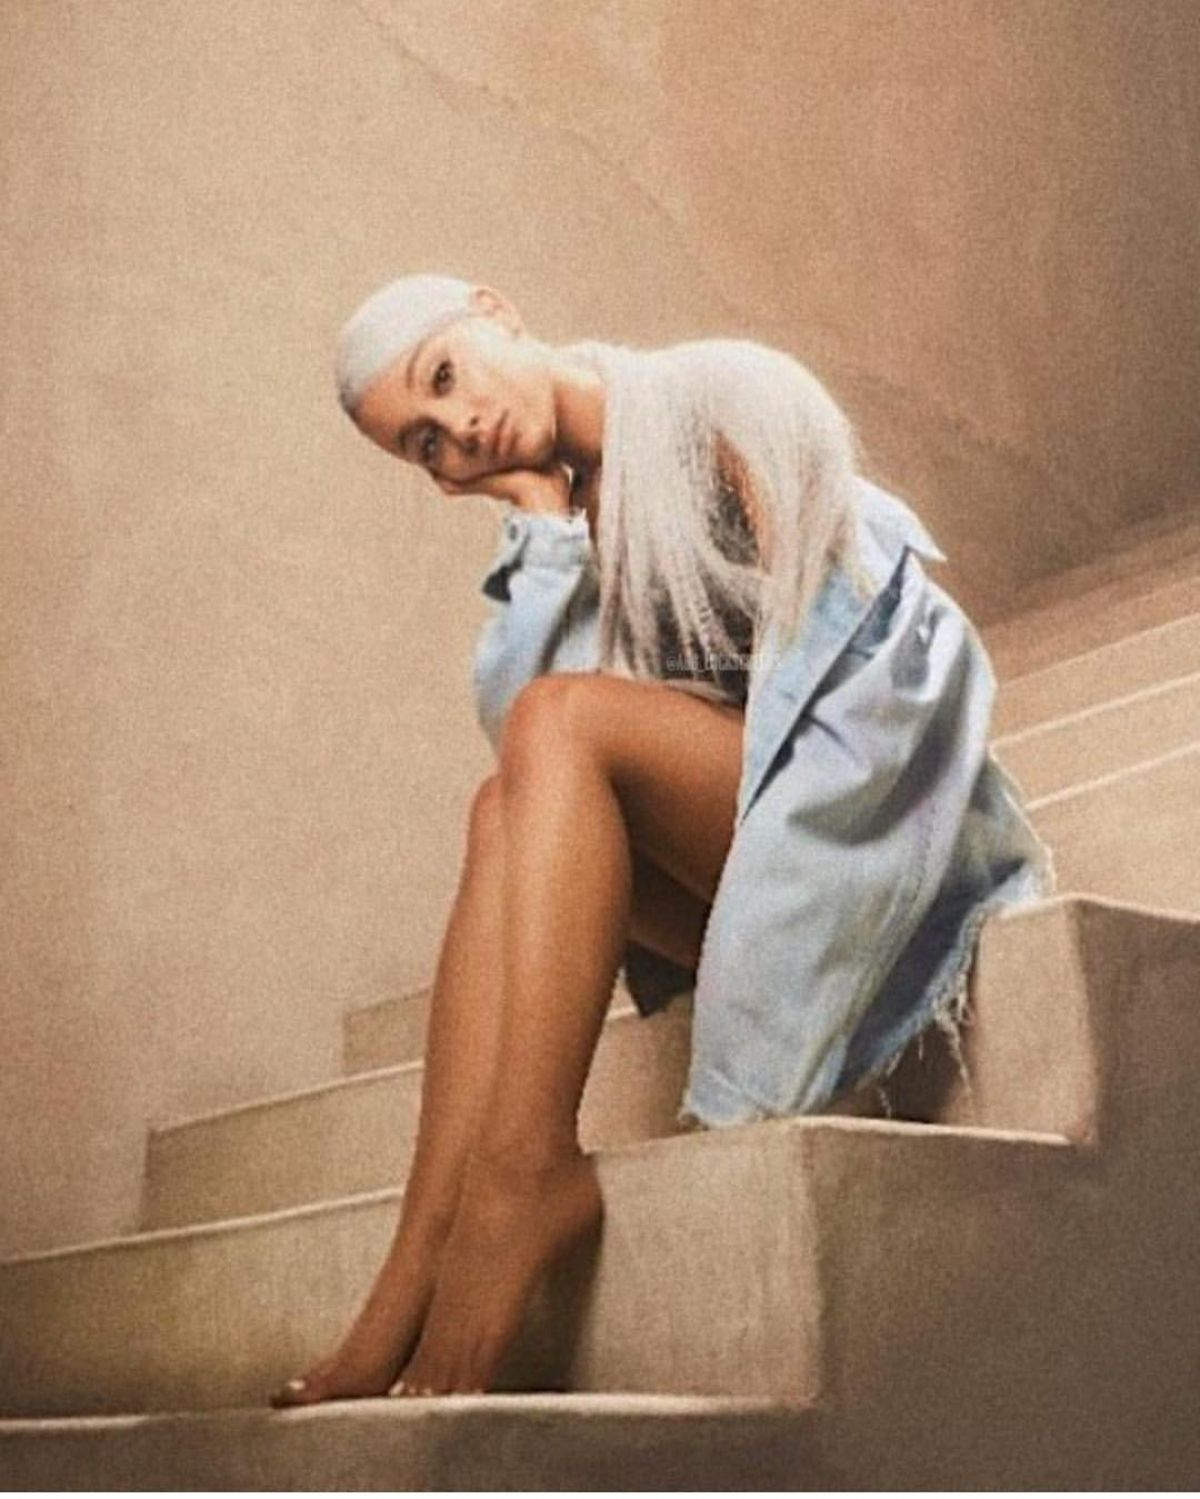 ariana grande sweetener - photo #2